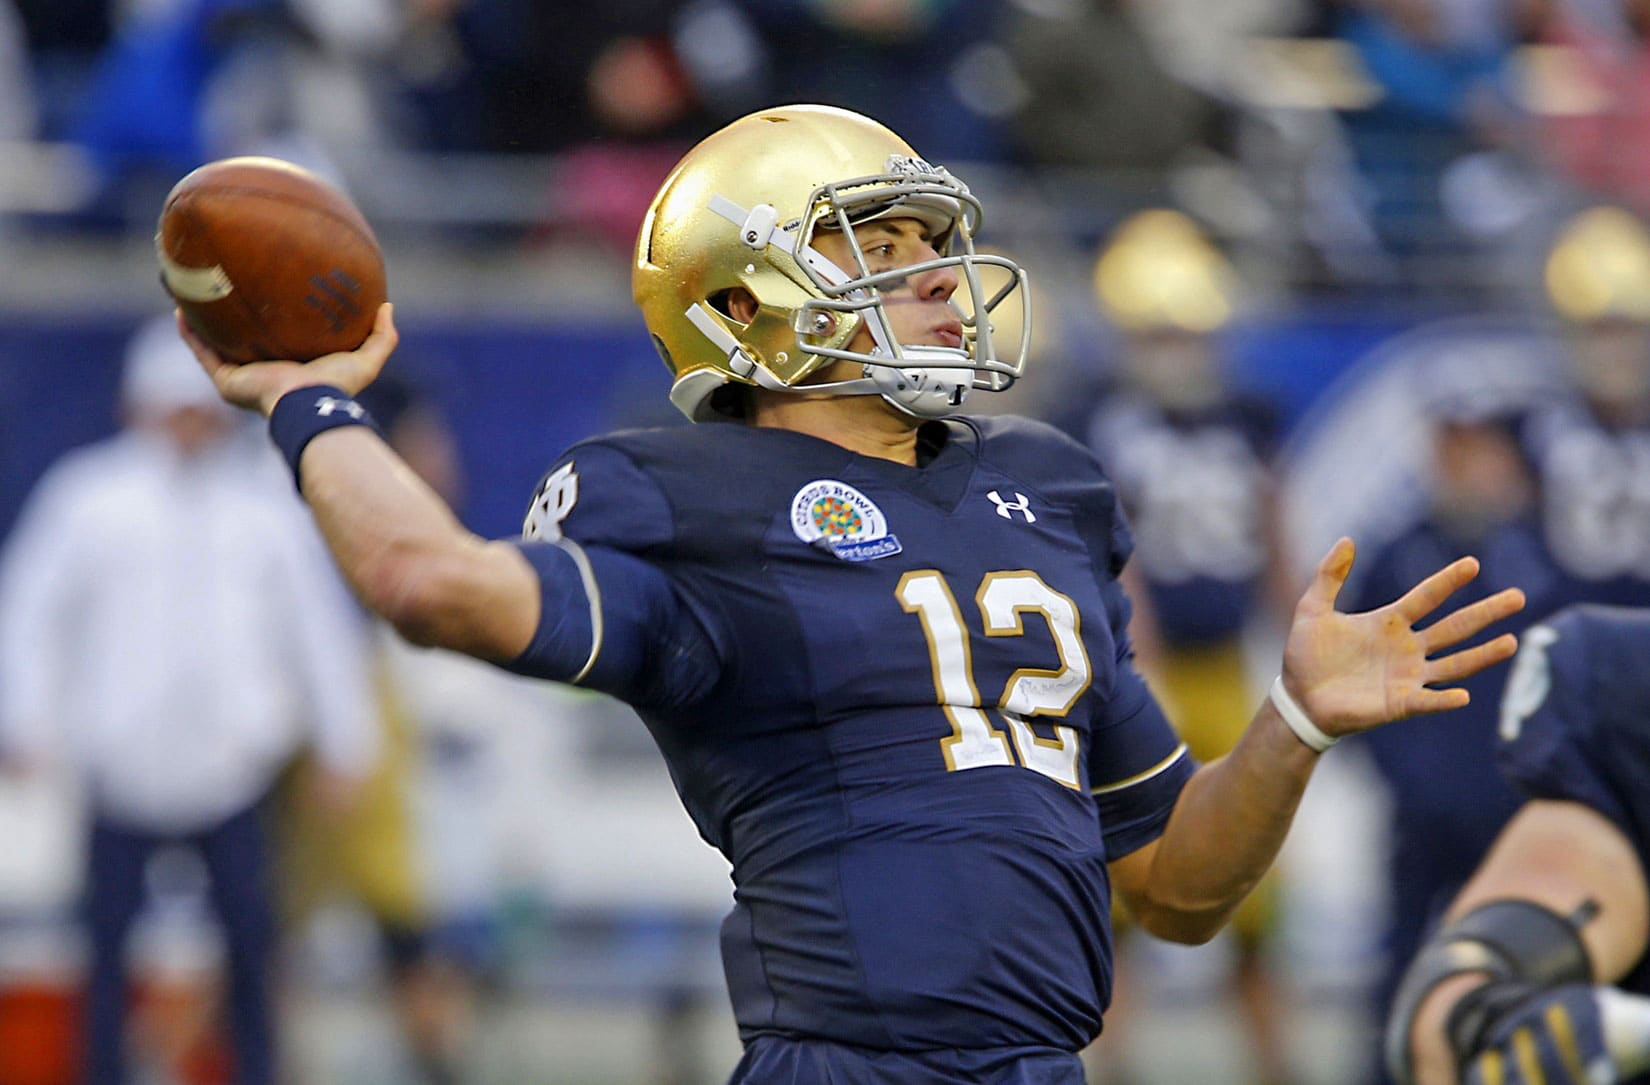 Ian-book-notre-dame-qb-competition